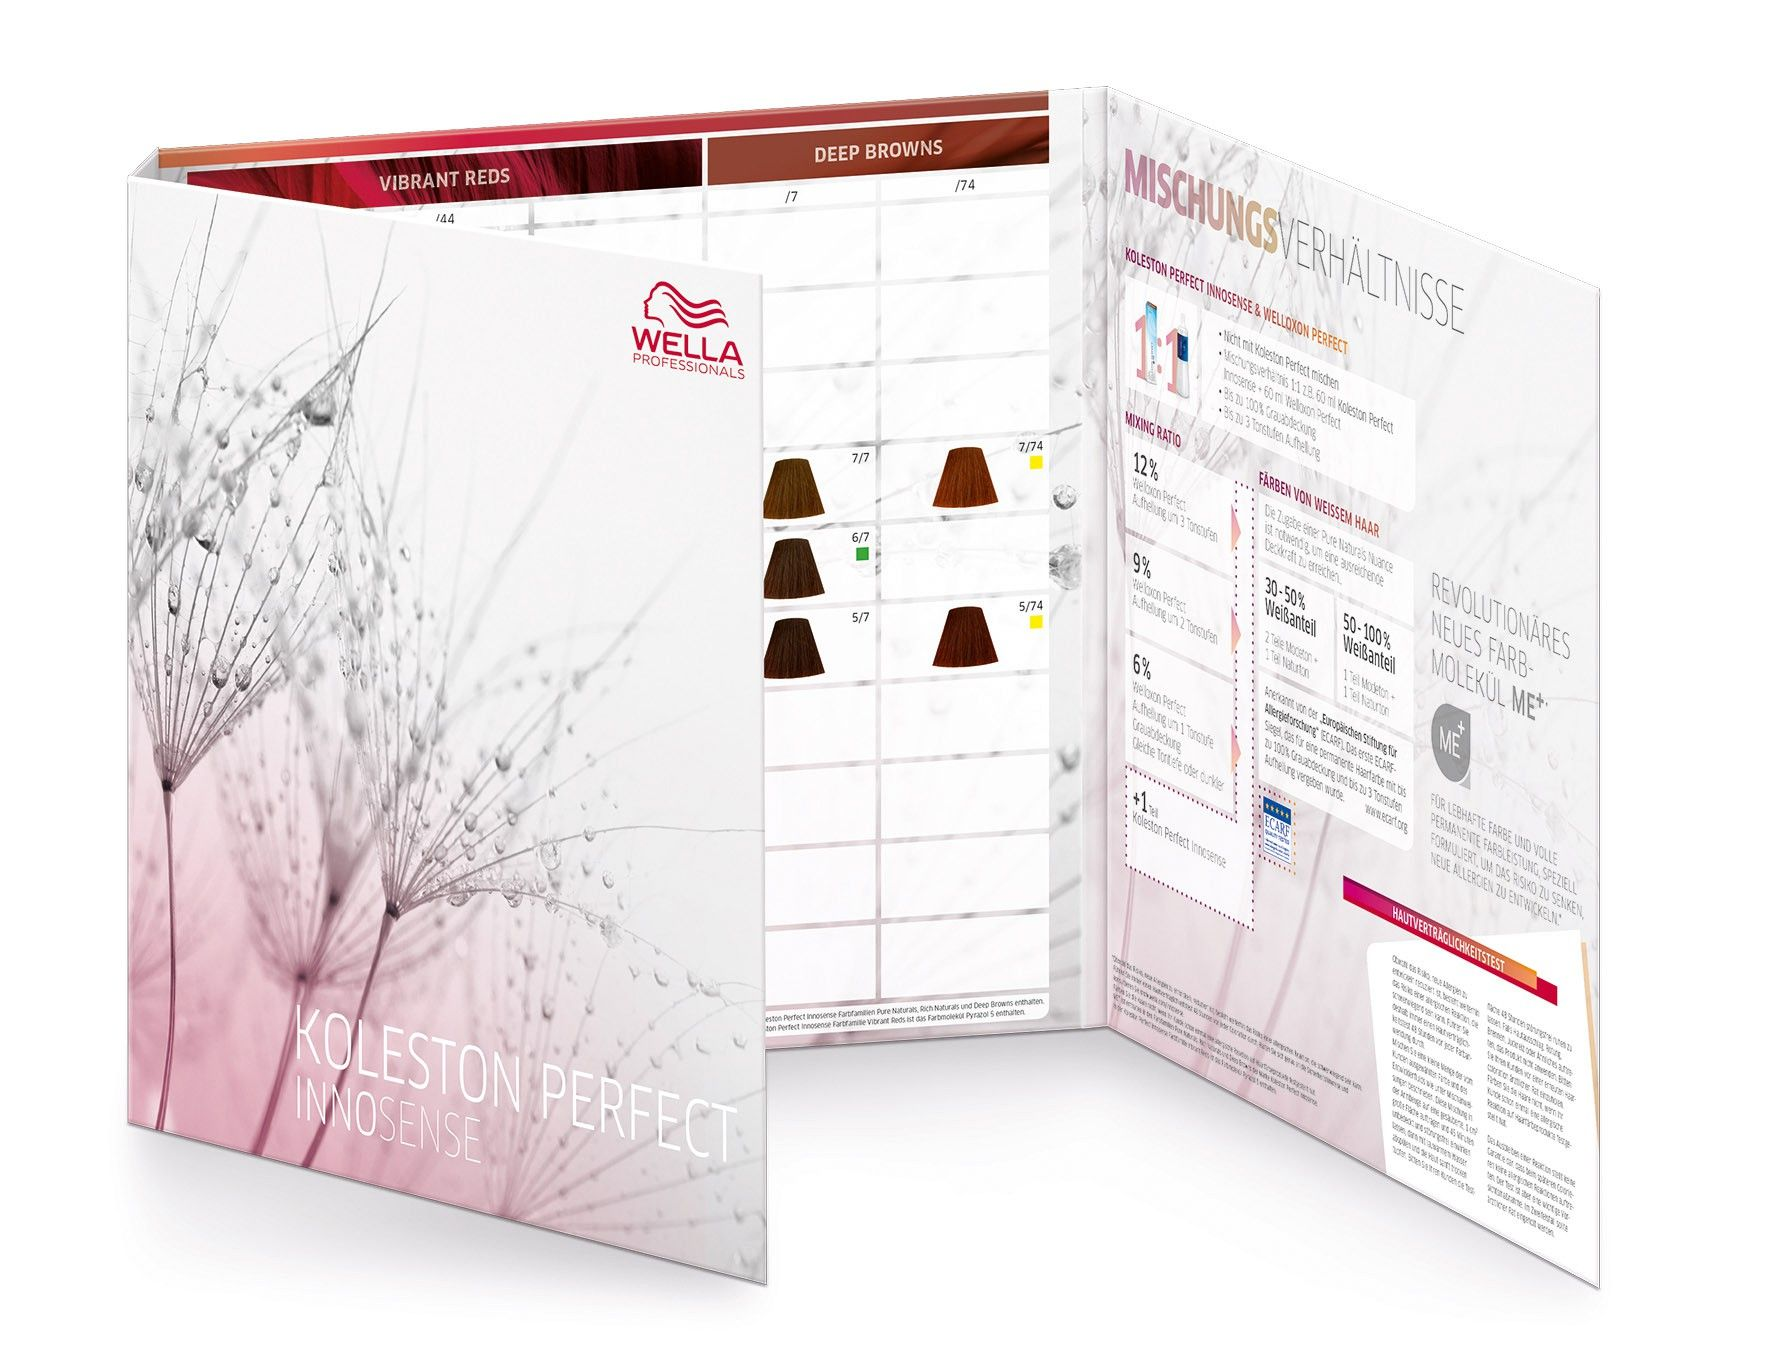 Wella Professionals Koleston Perfect Innosense Color Chart.